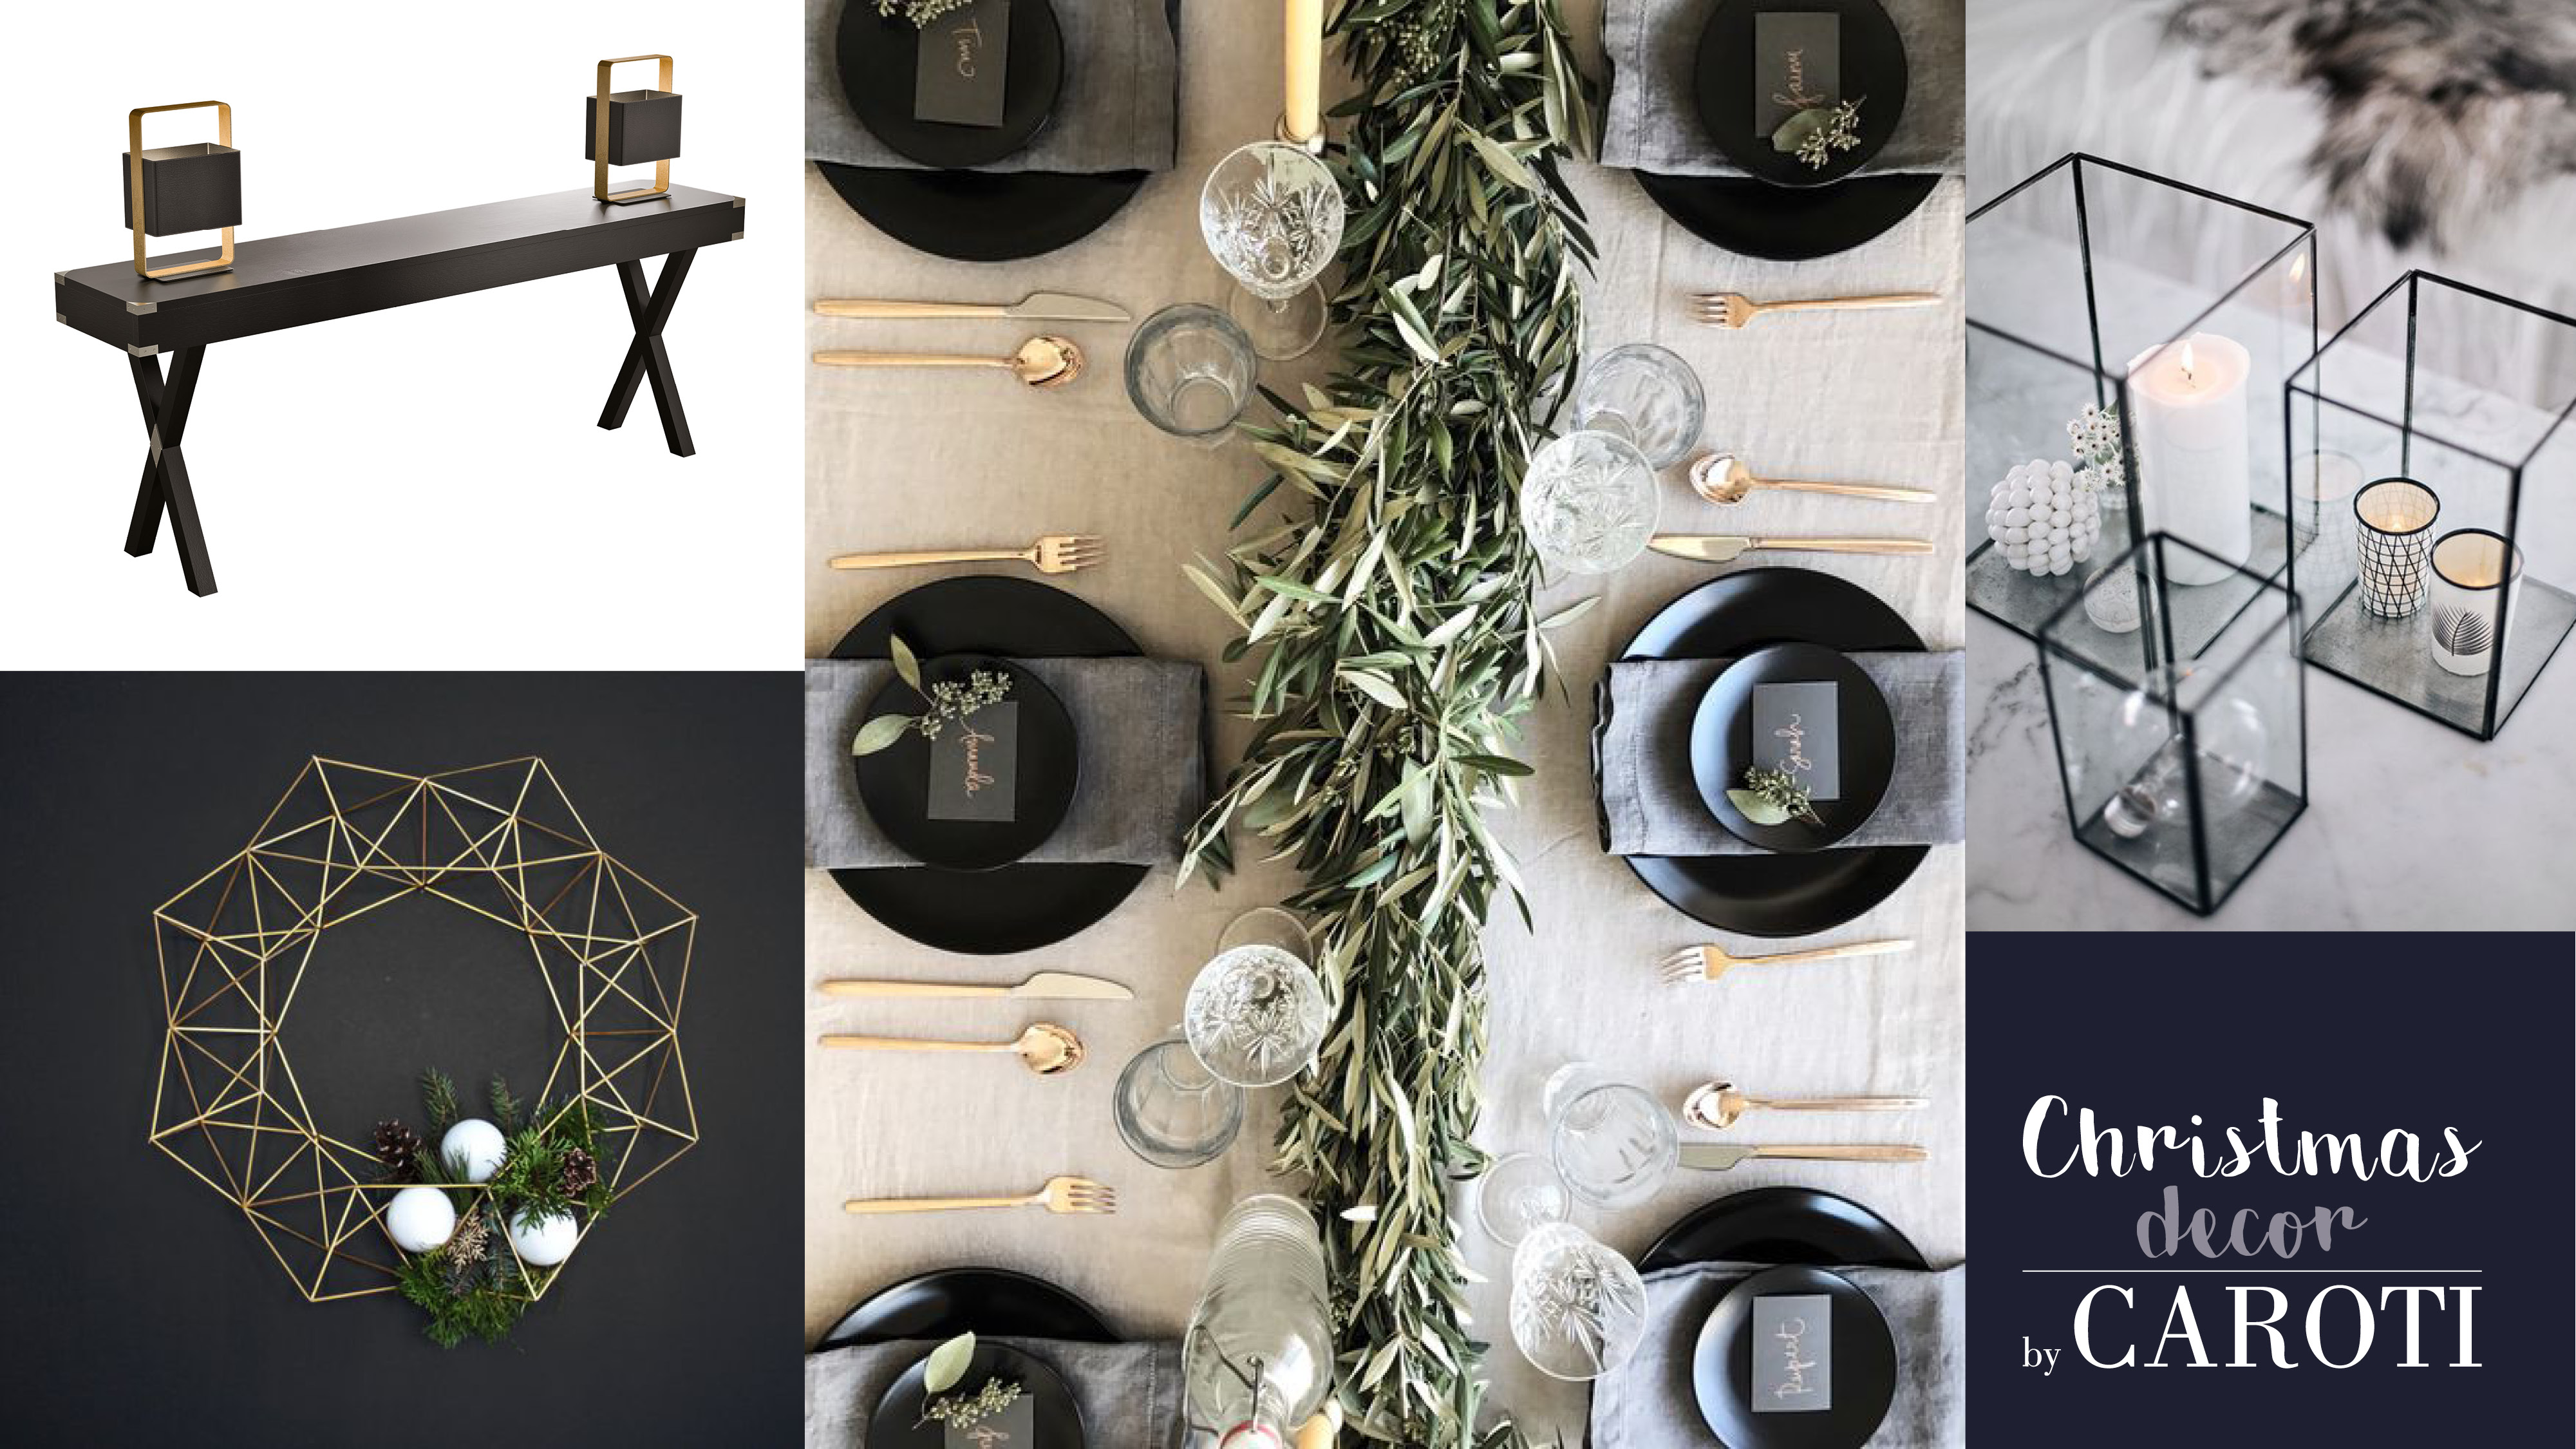 christmas decor tips by caroti in black glam style #2